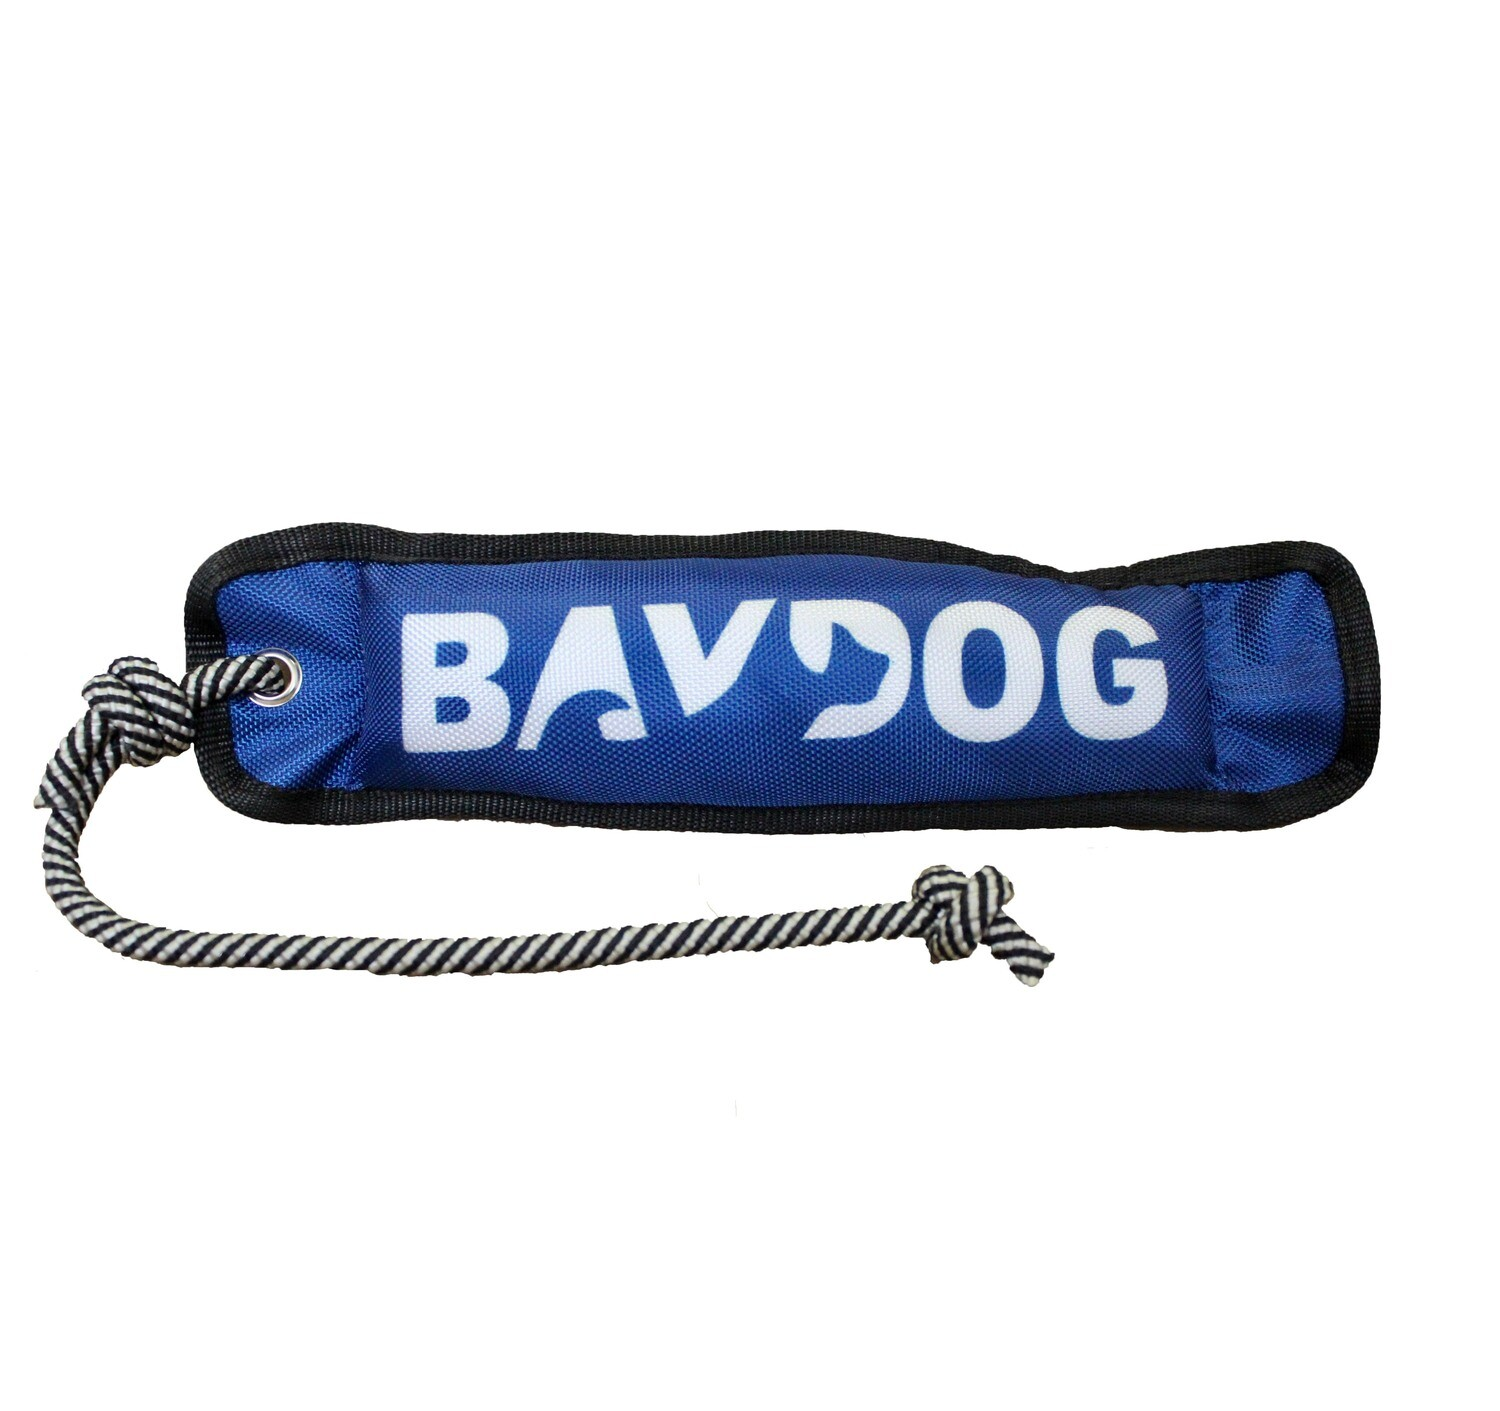 Baydog Toy Bumper Blue or White